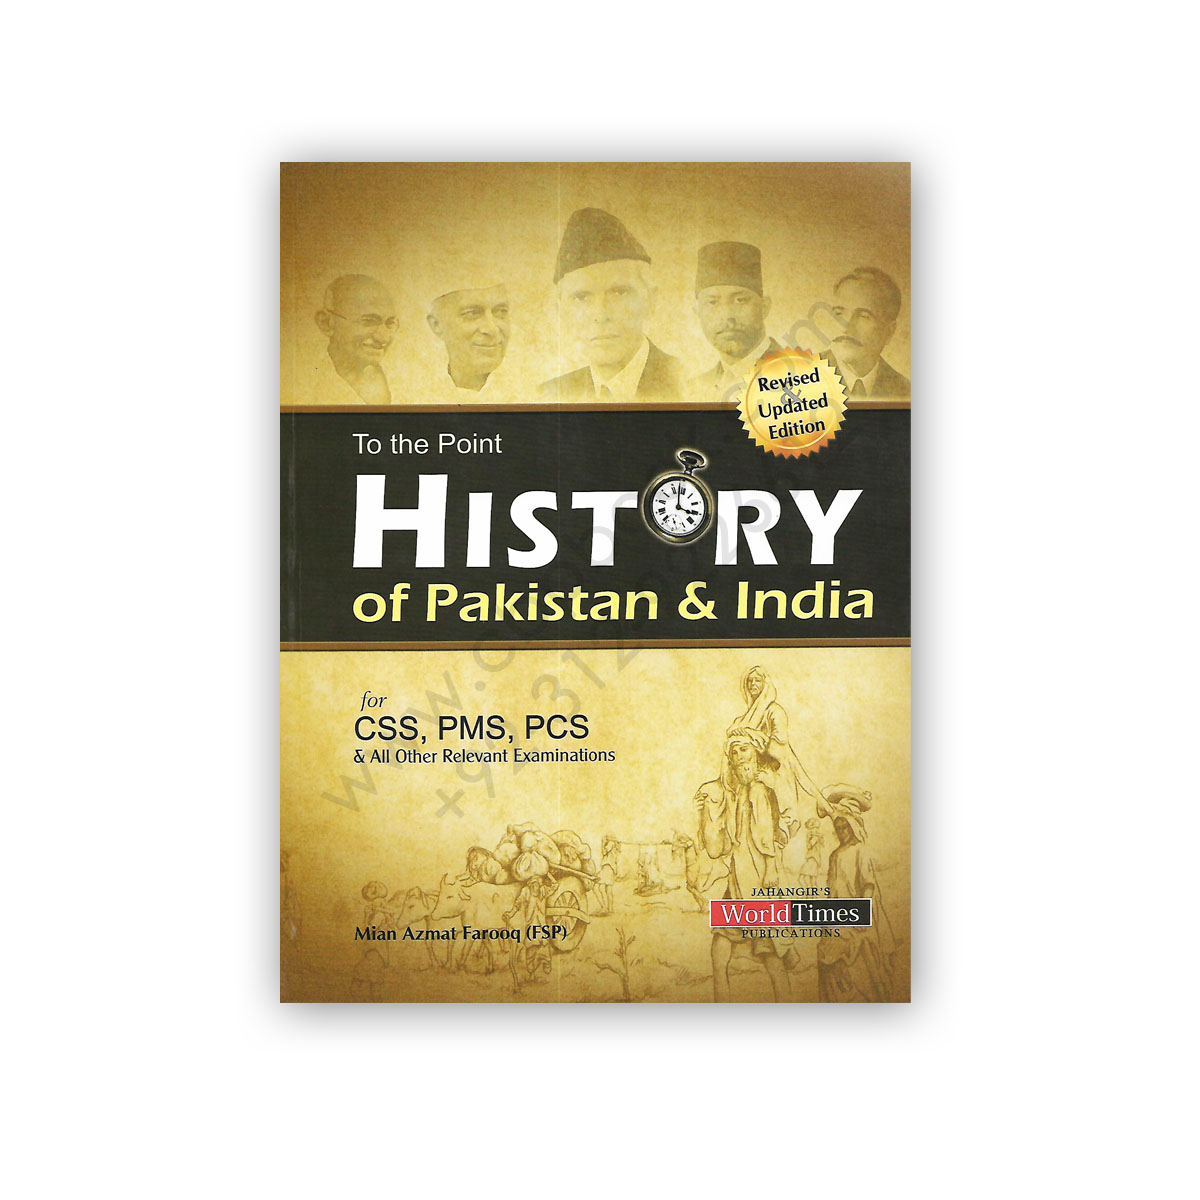 To The Point History of Pakistan & India For CSS/PMS/PCS - Jahangir  WorldTimes